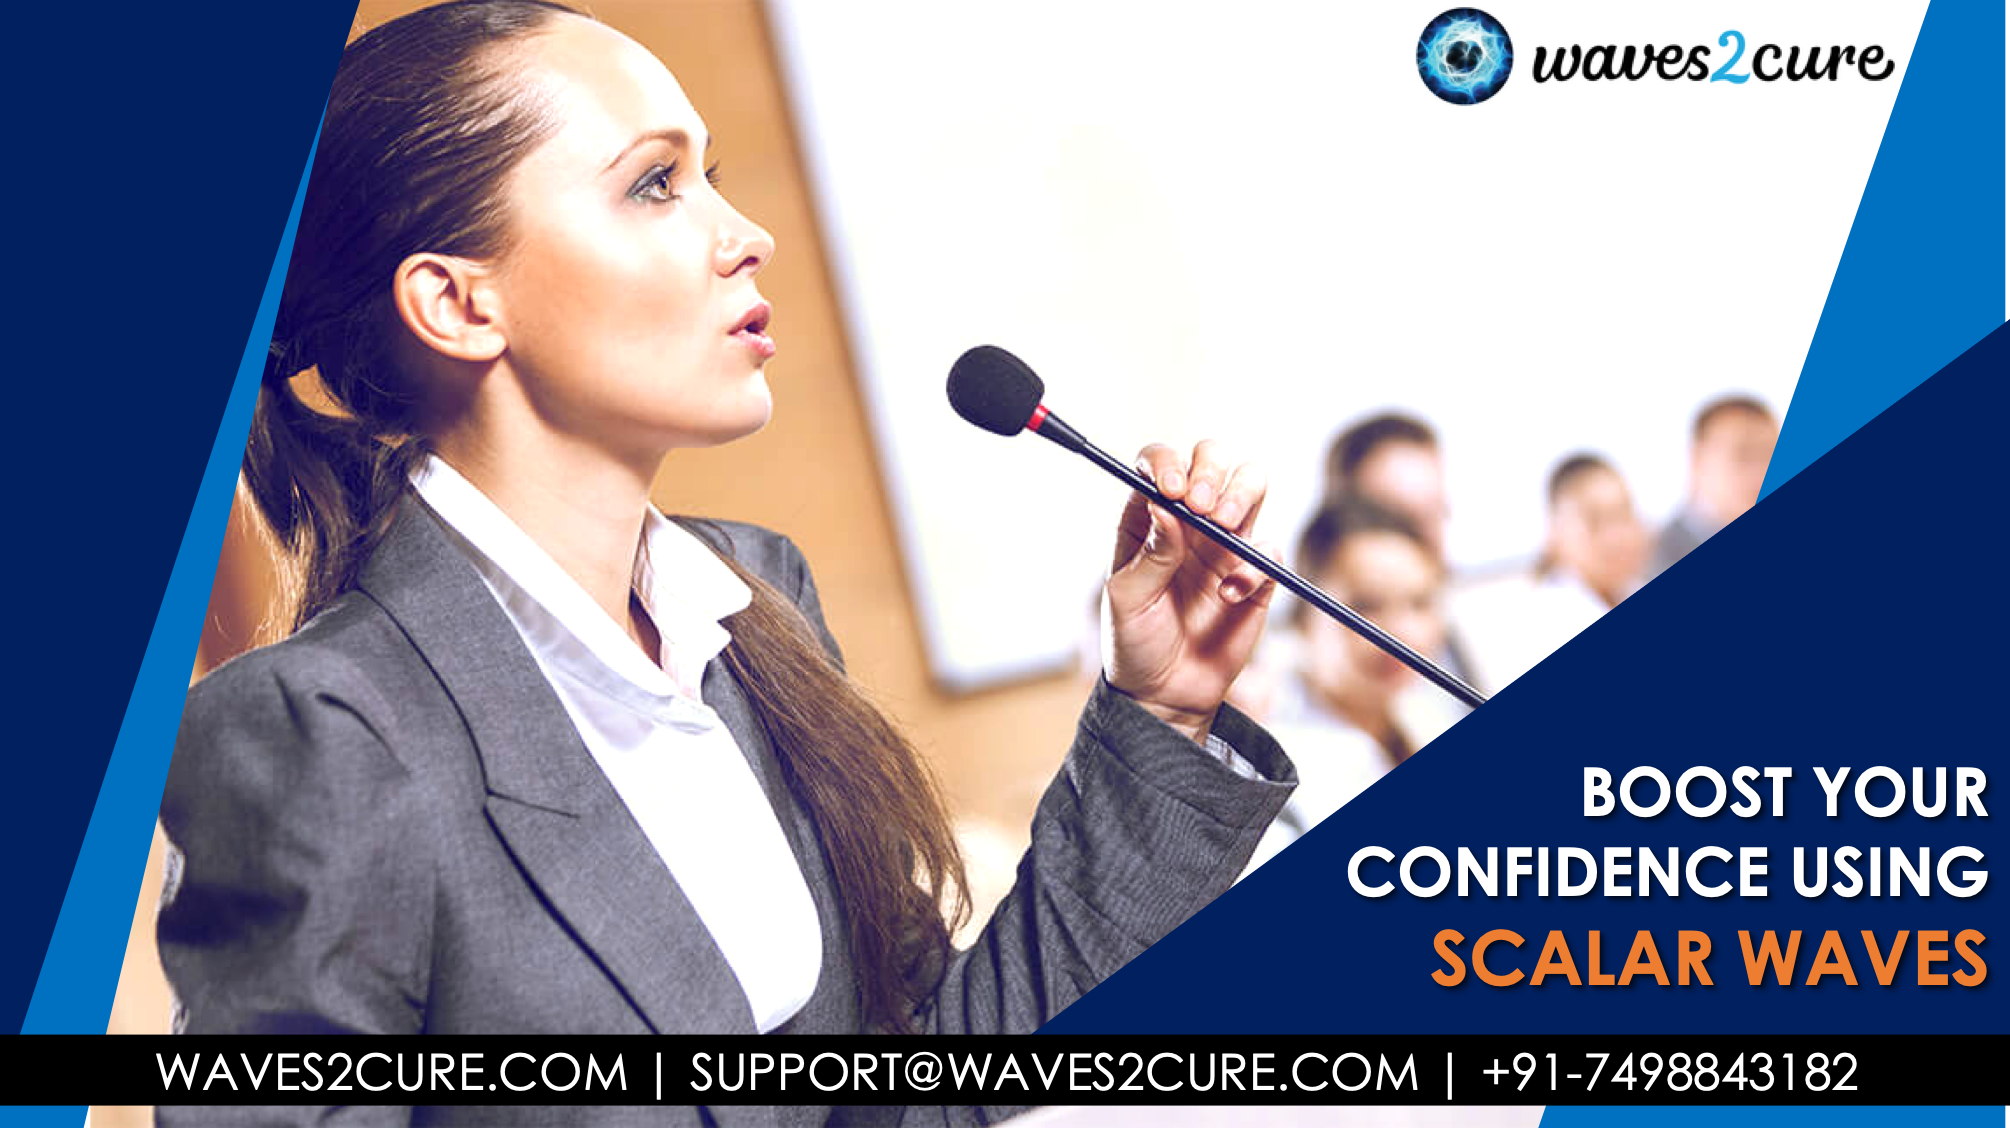 Boost Your Confidence Using Scalar Waves